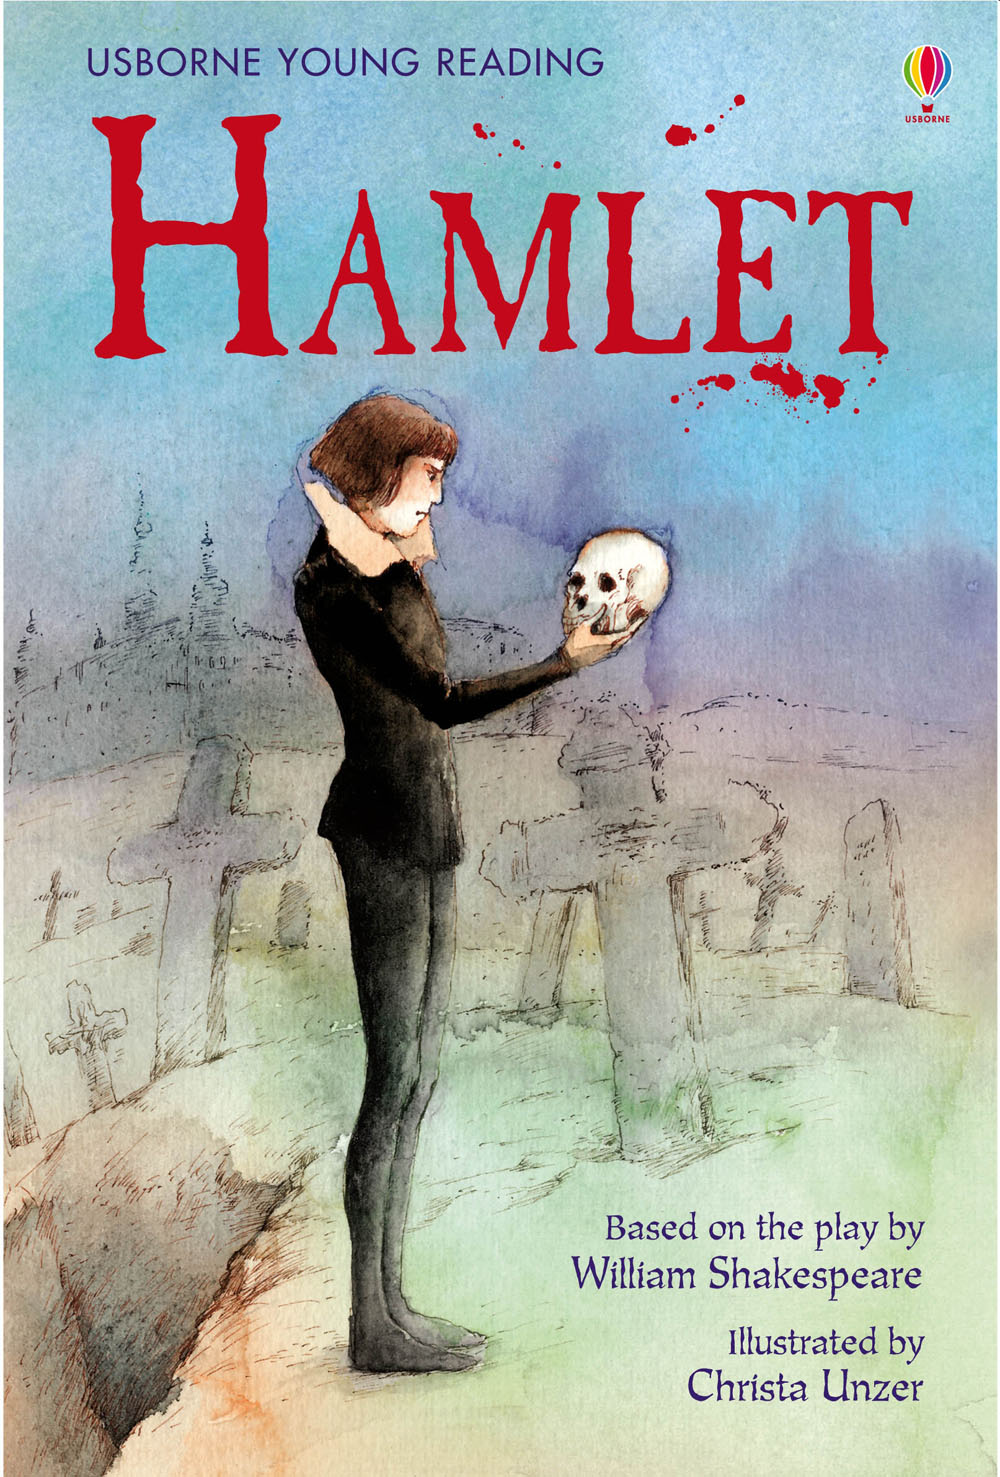 macbeths depth and ability of thinking in shakespeares hamlet , ultimately you'll need to decide for yourself about shakespeare and macbeth ability to do evil lady macbeth b-tches at her macbeths' depth.